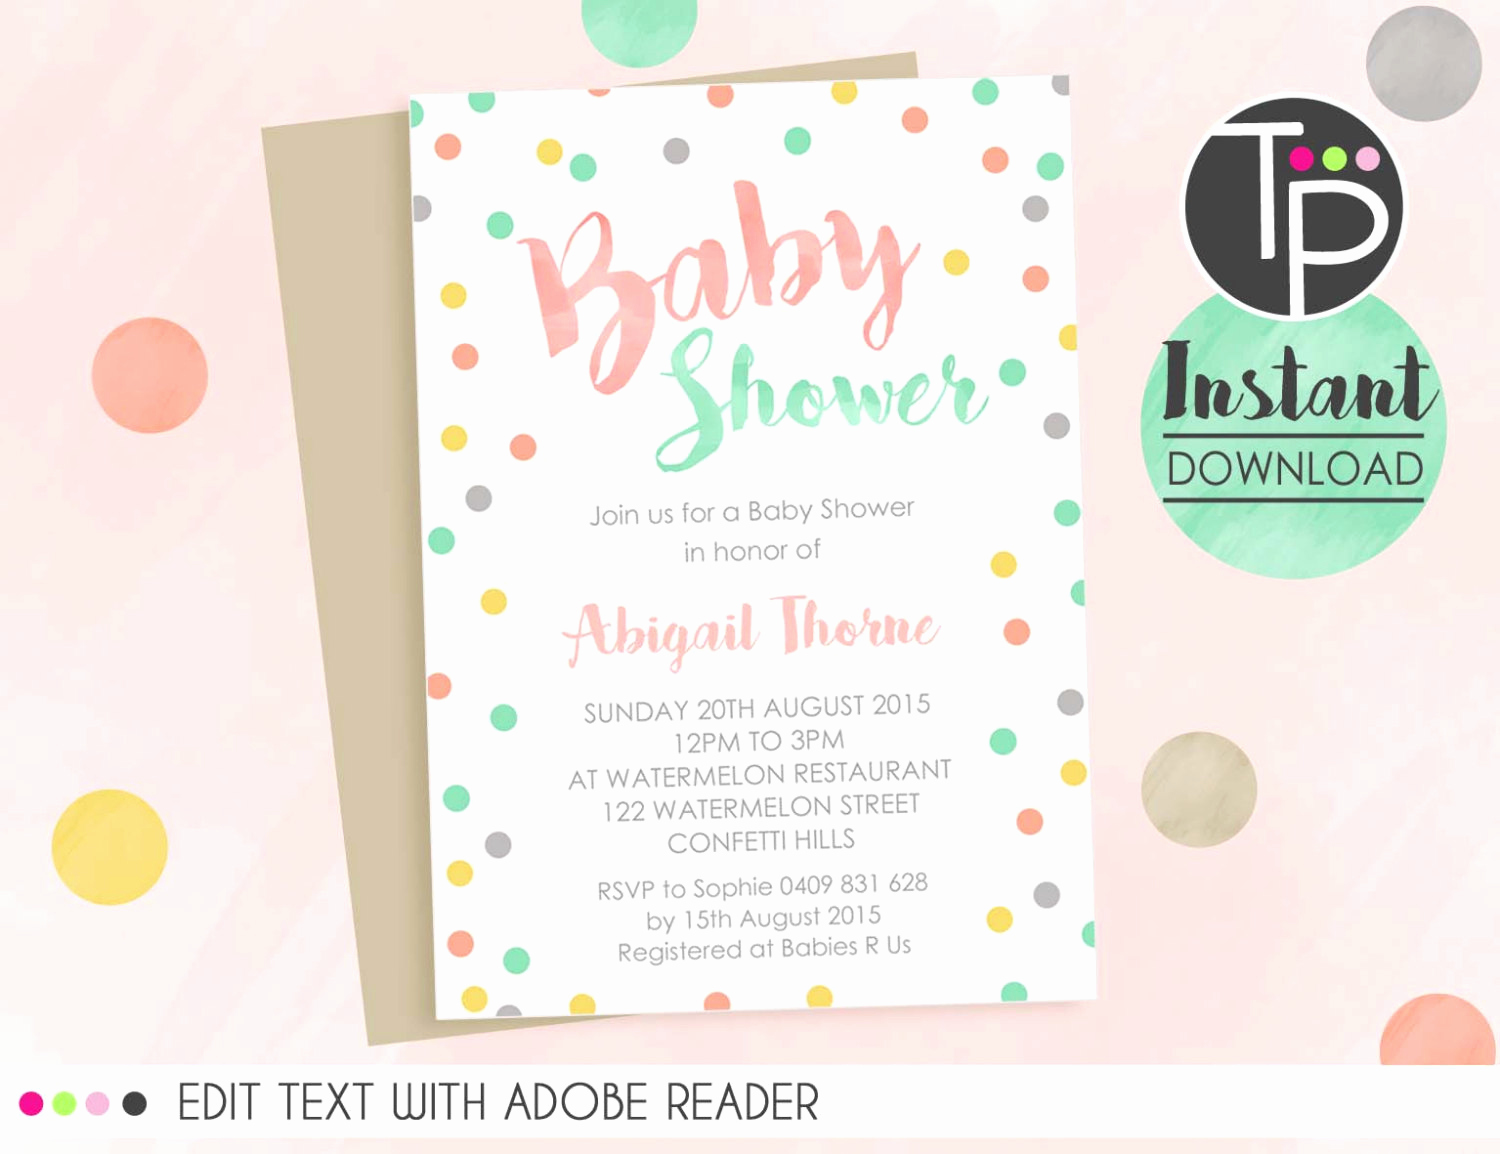 Work Baby Shower Invitation Lovely Confetti Baby Shower Invitation Instant Download Invitation